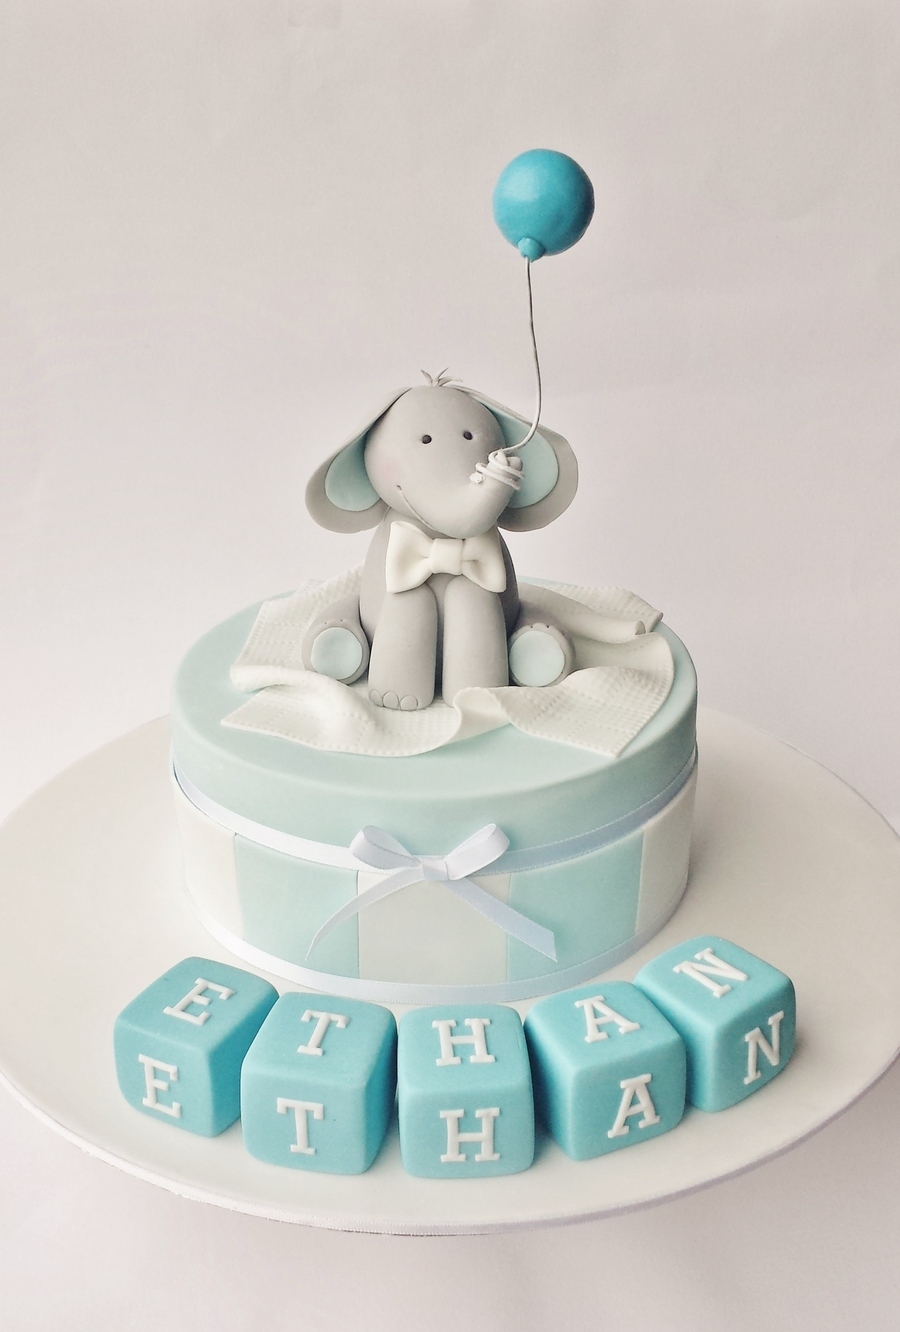 christening cake for a